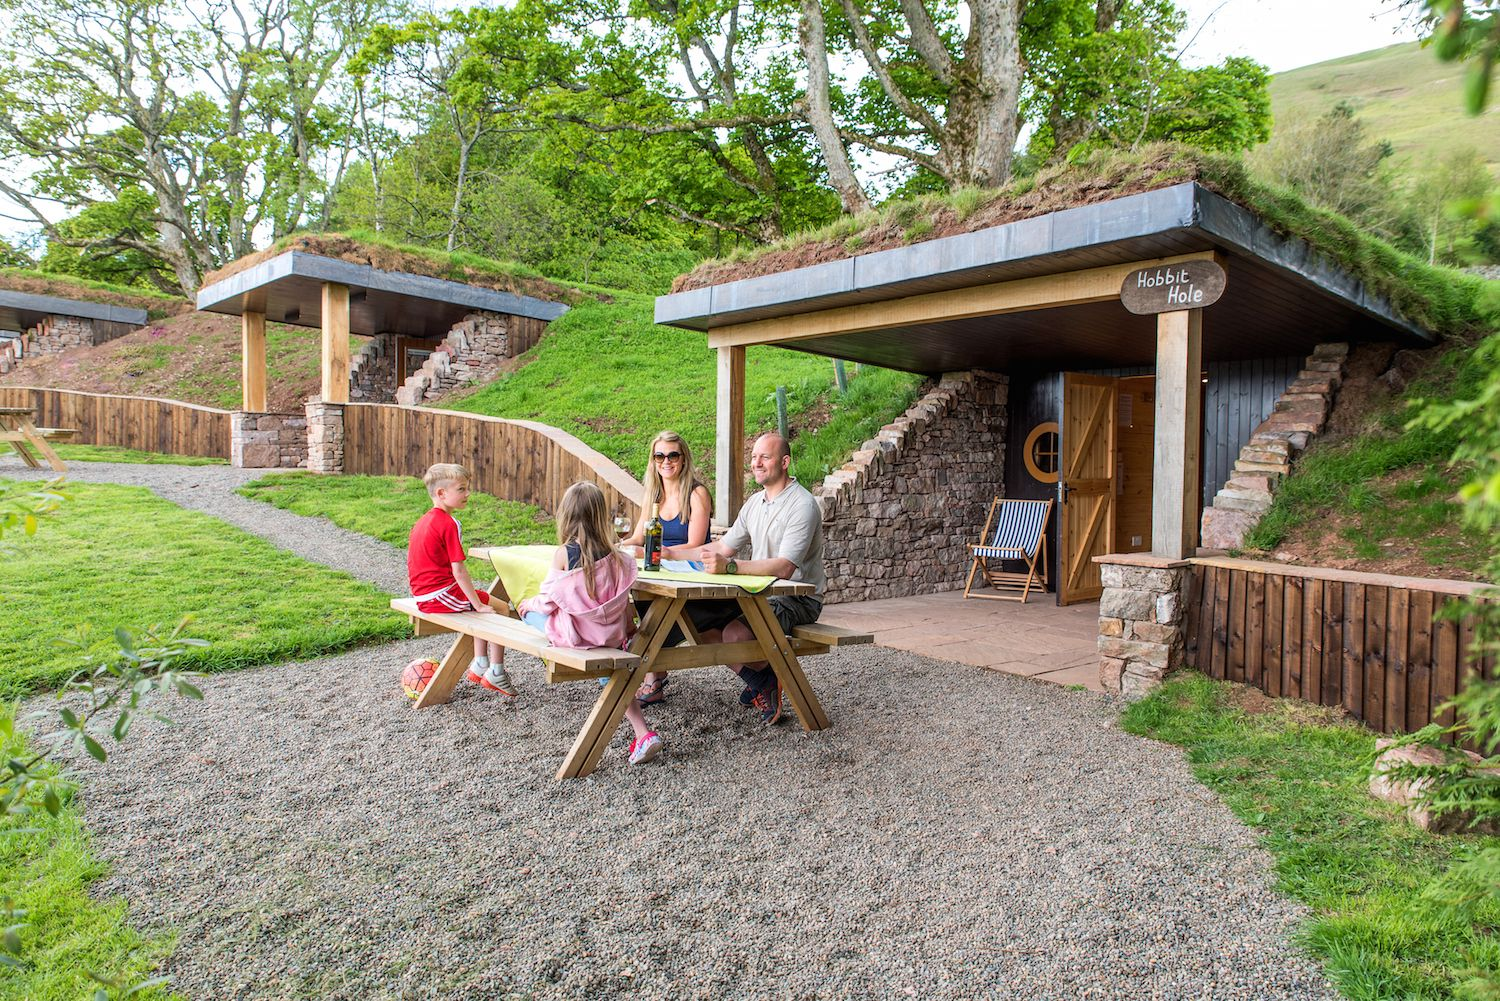 Family glamping in the hobbit holes at The Quiet Site, an eco-friendly campsite near Ullswater in Cumbria